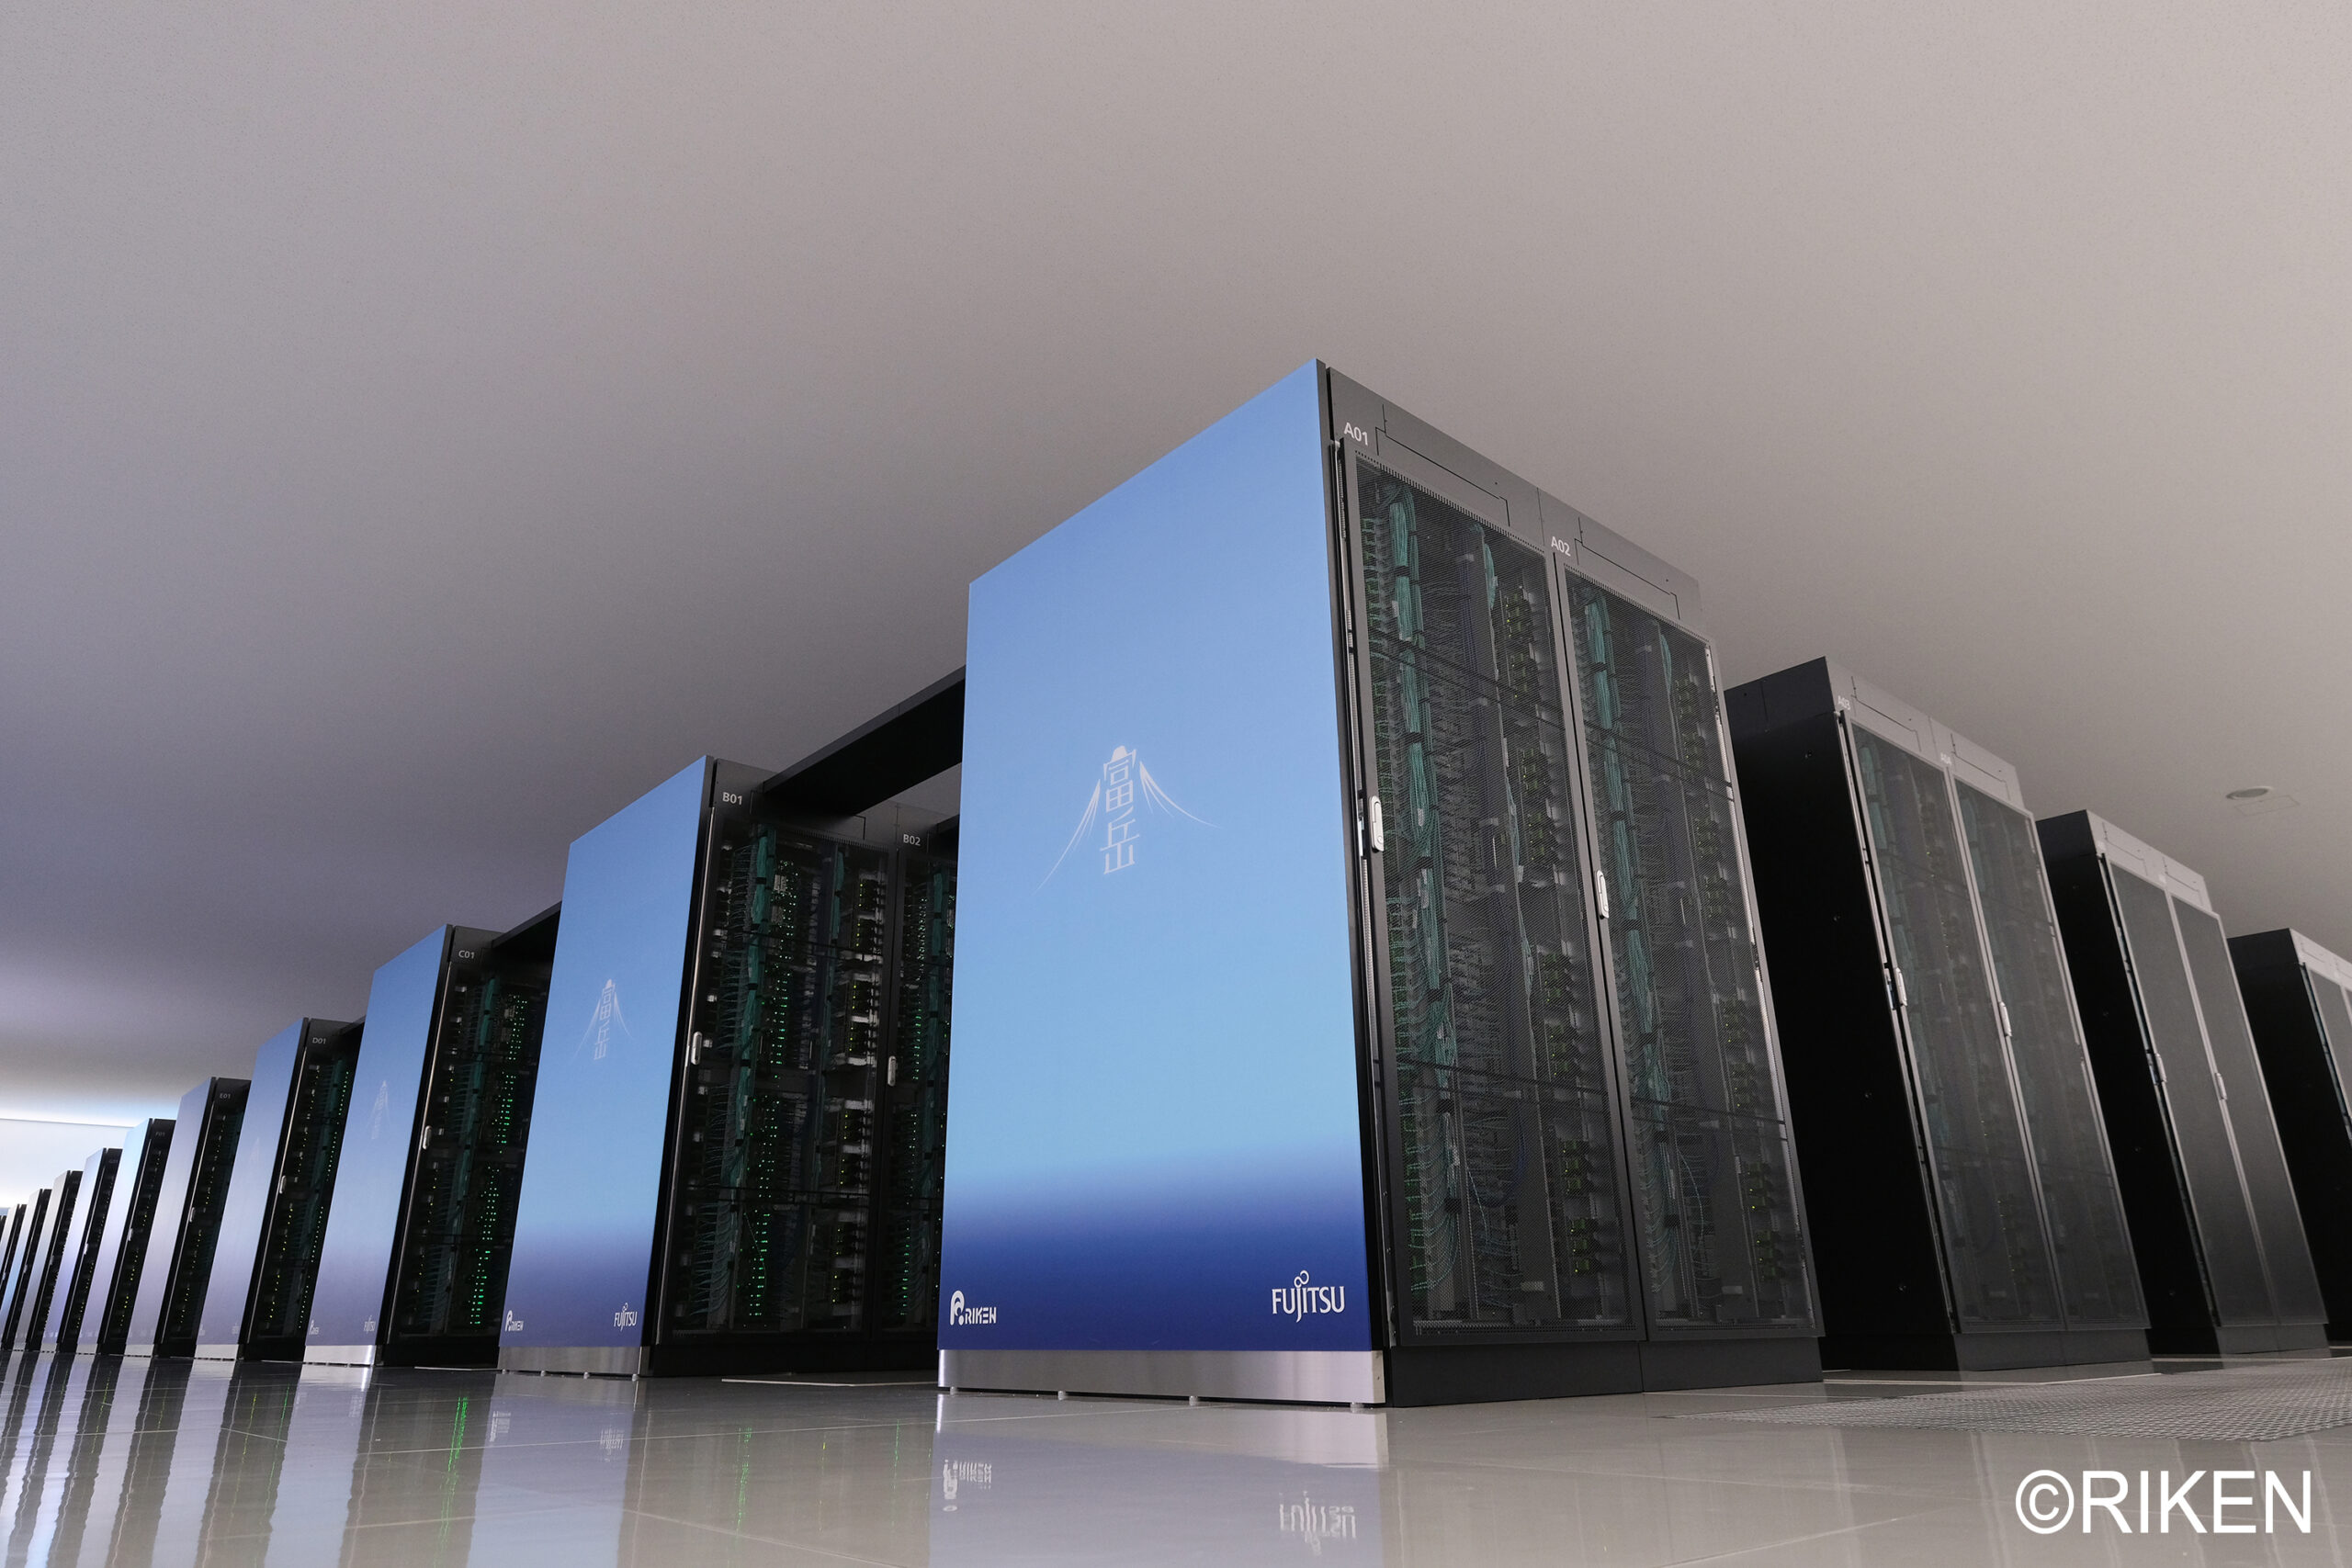 Another view of Fugaku, currently the fastest supercomputer in the world